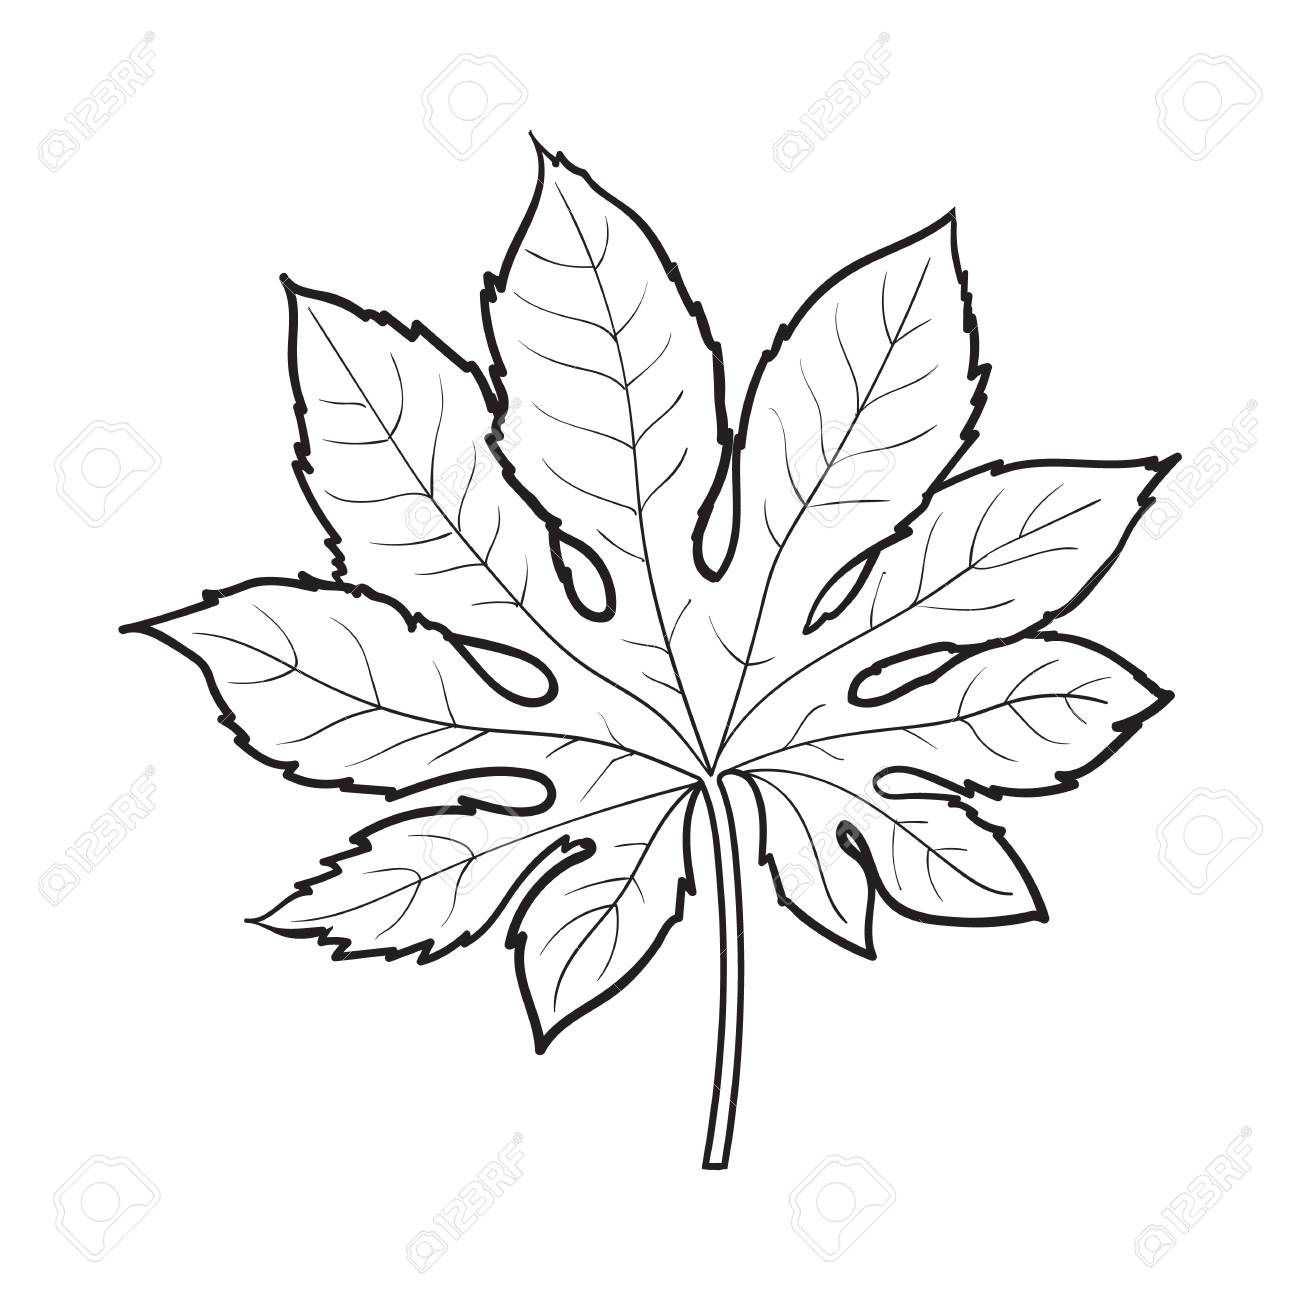 1300x1300 Full Fresh Leaf Of Fatsia Japonica Palm Tree, Sketch Style Vector